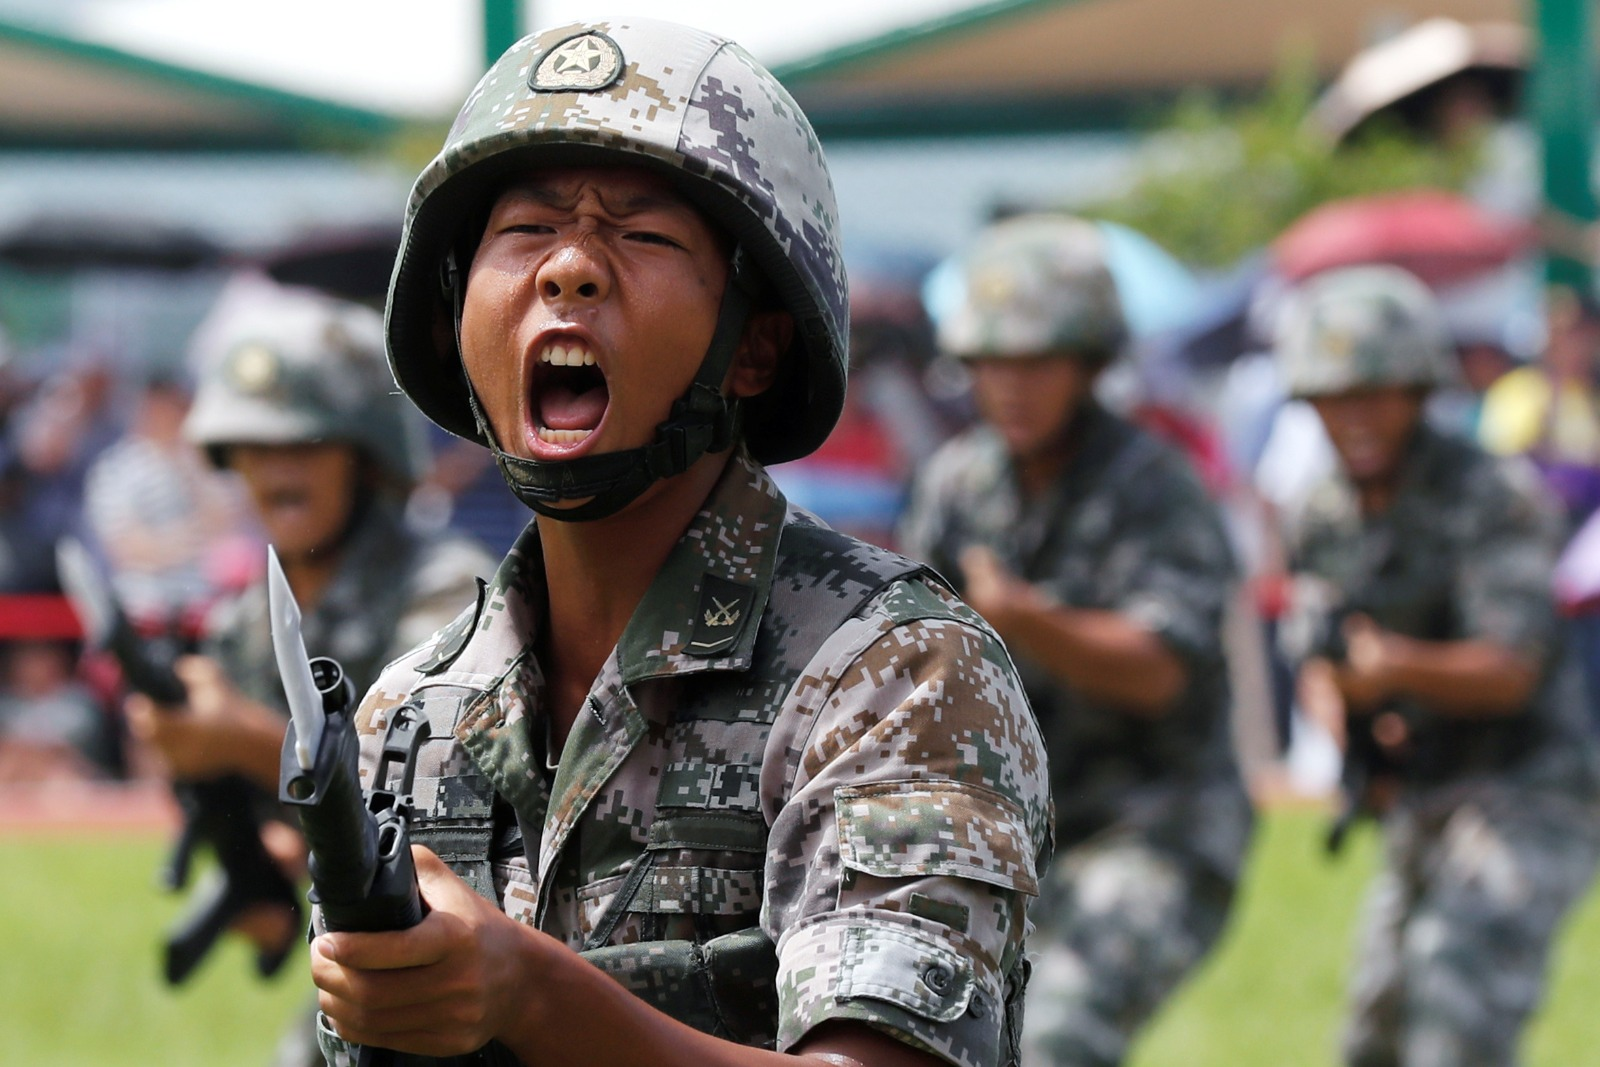 This Video Shows How China Would Invade and Crush Hong Kong